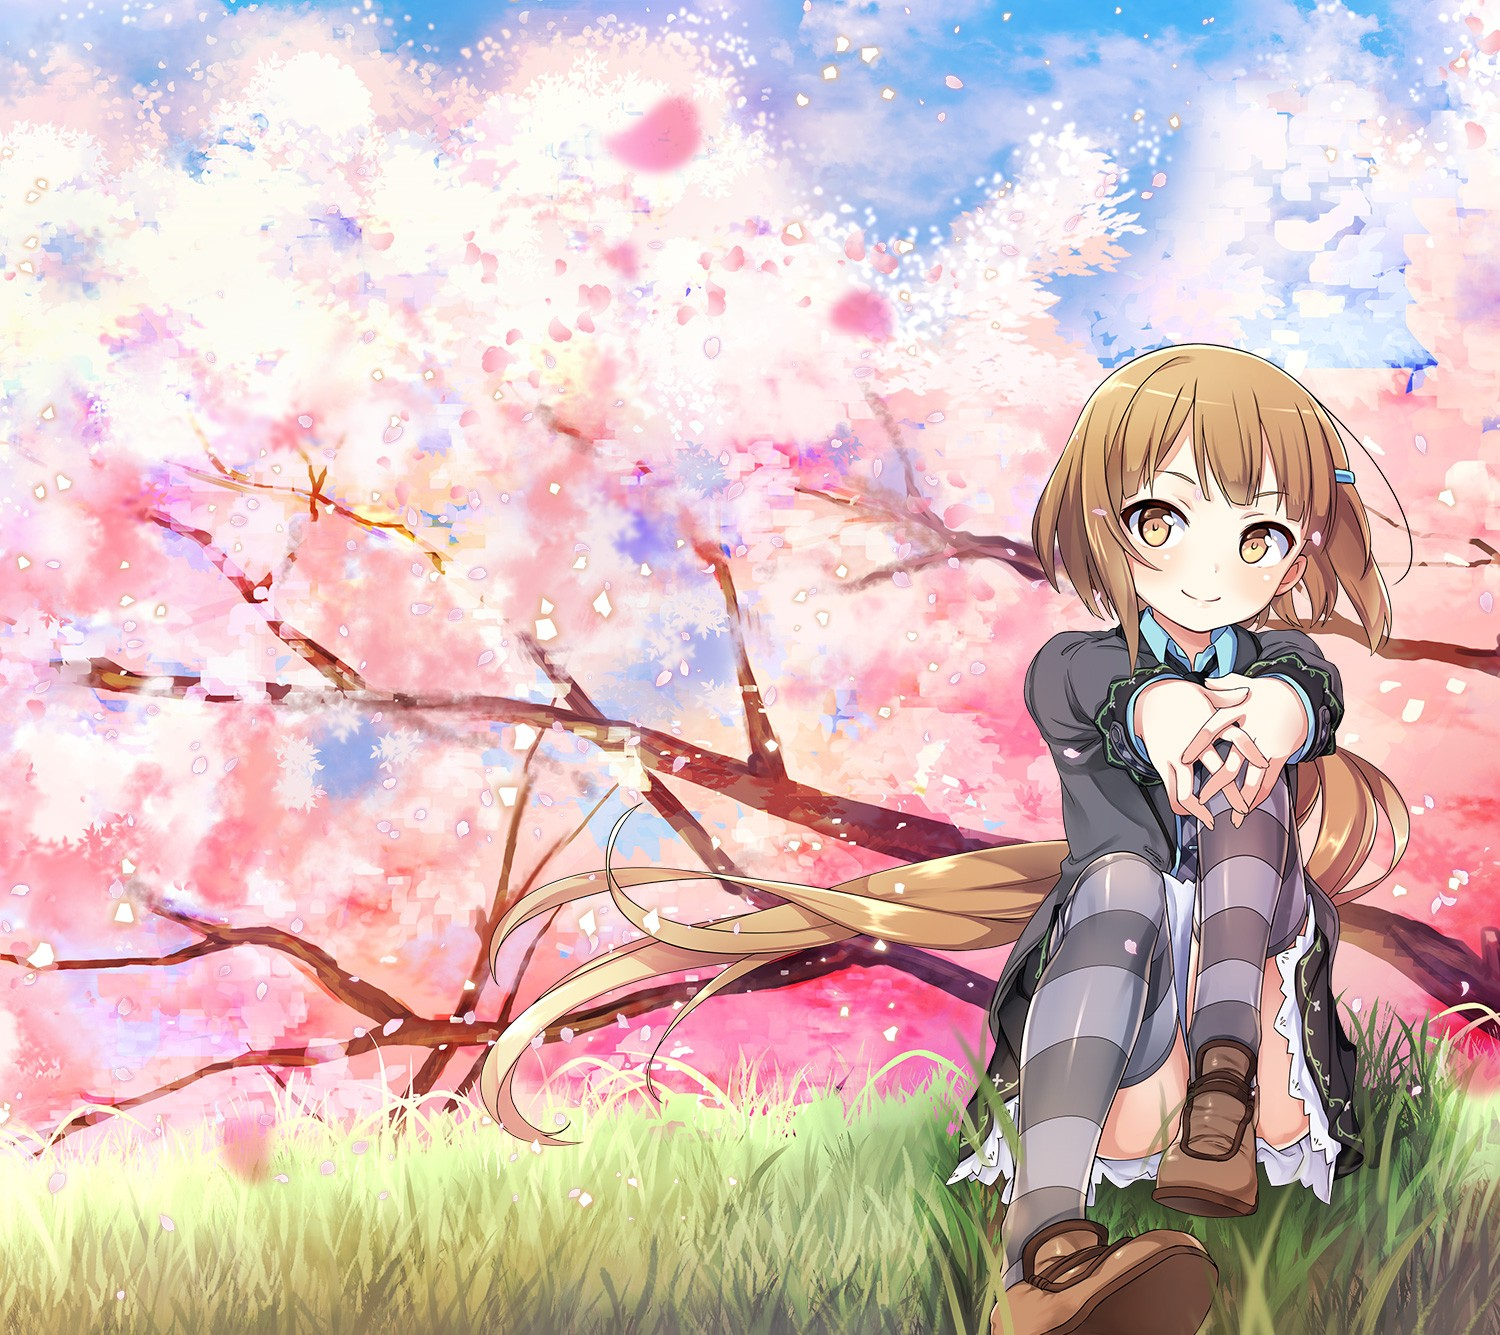 Anime 1500x1335 anime girls anime cherry blossom purple